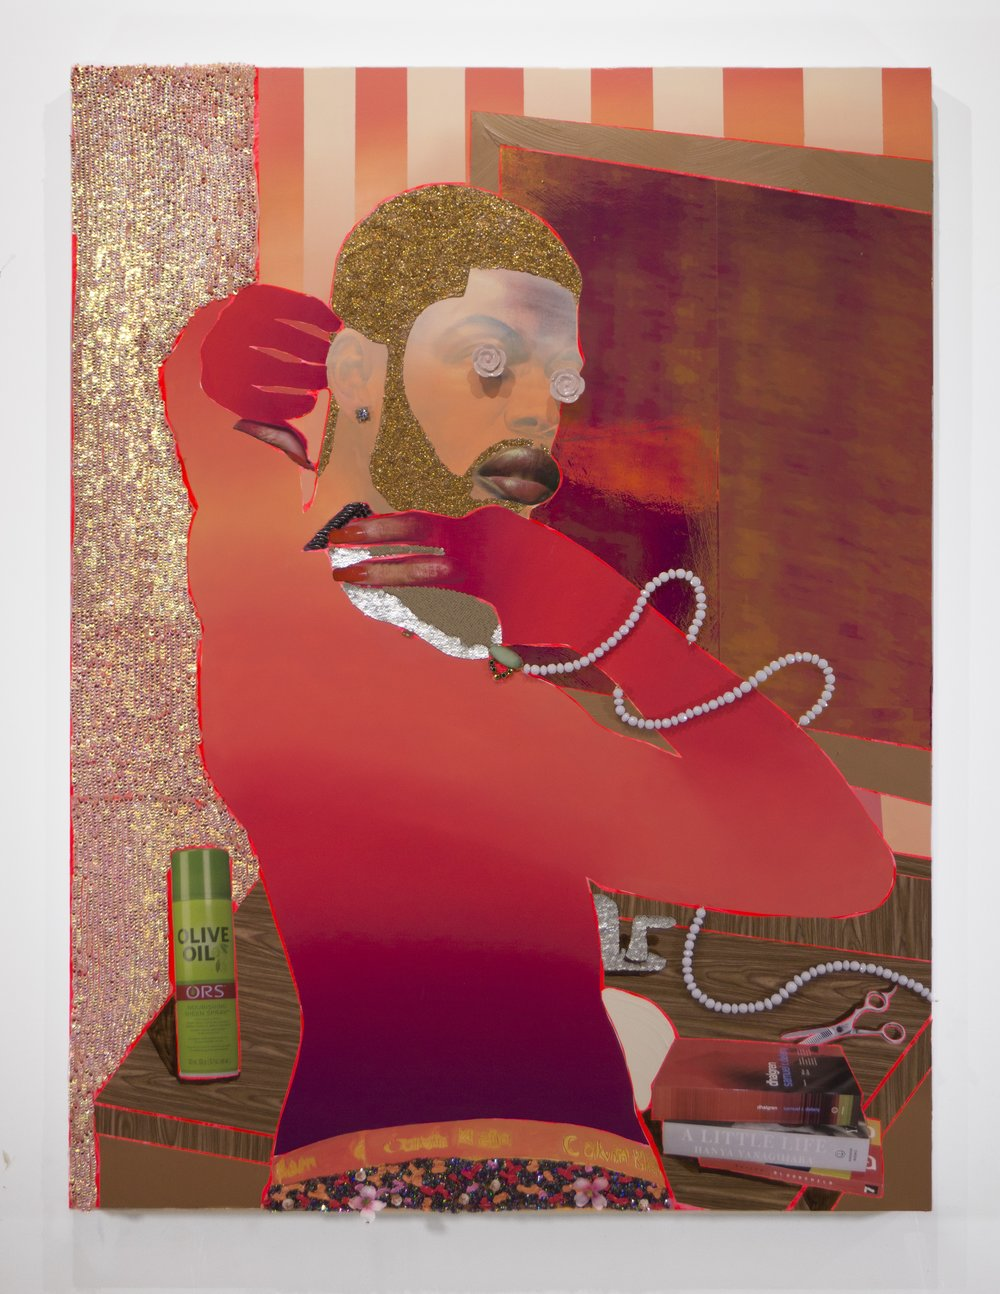 CTRL, 2017, Devan Shimoyama. Courtesy of De Buck Gallery.